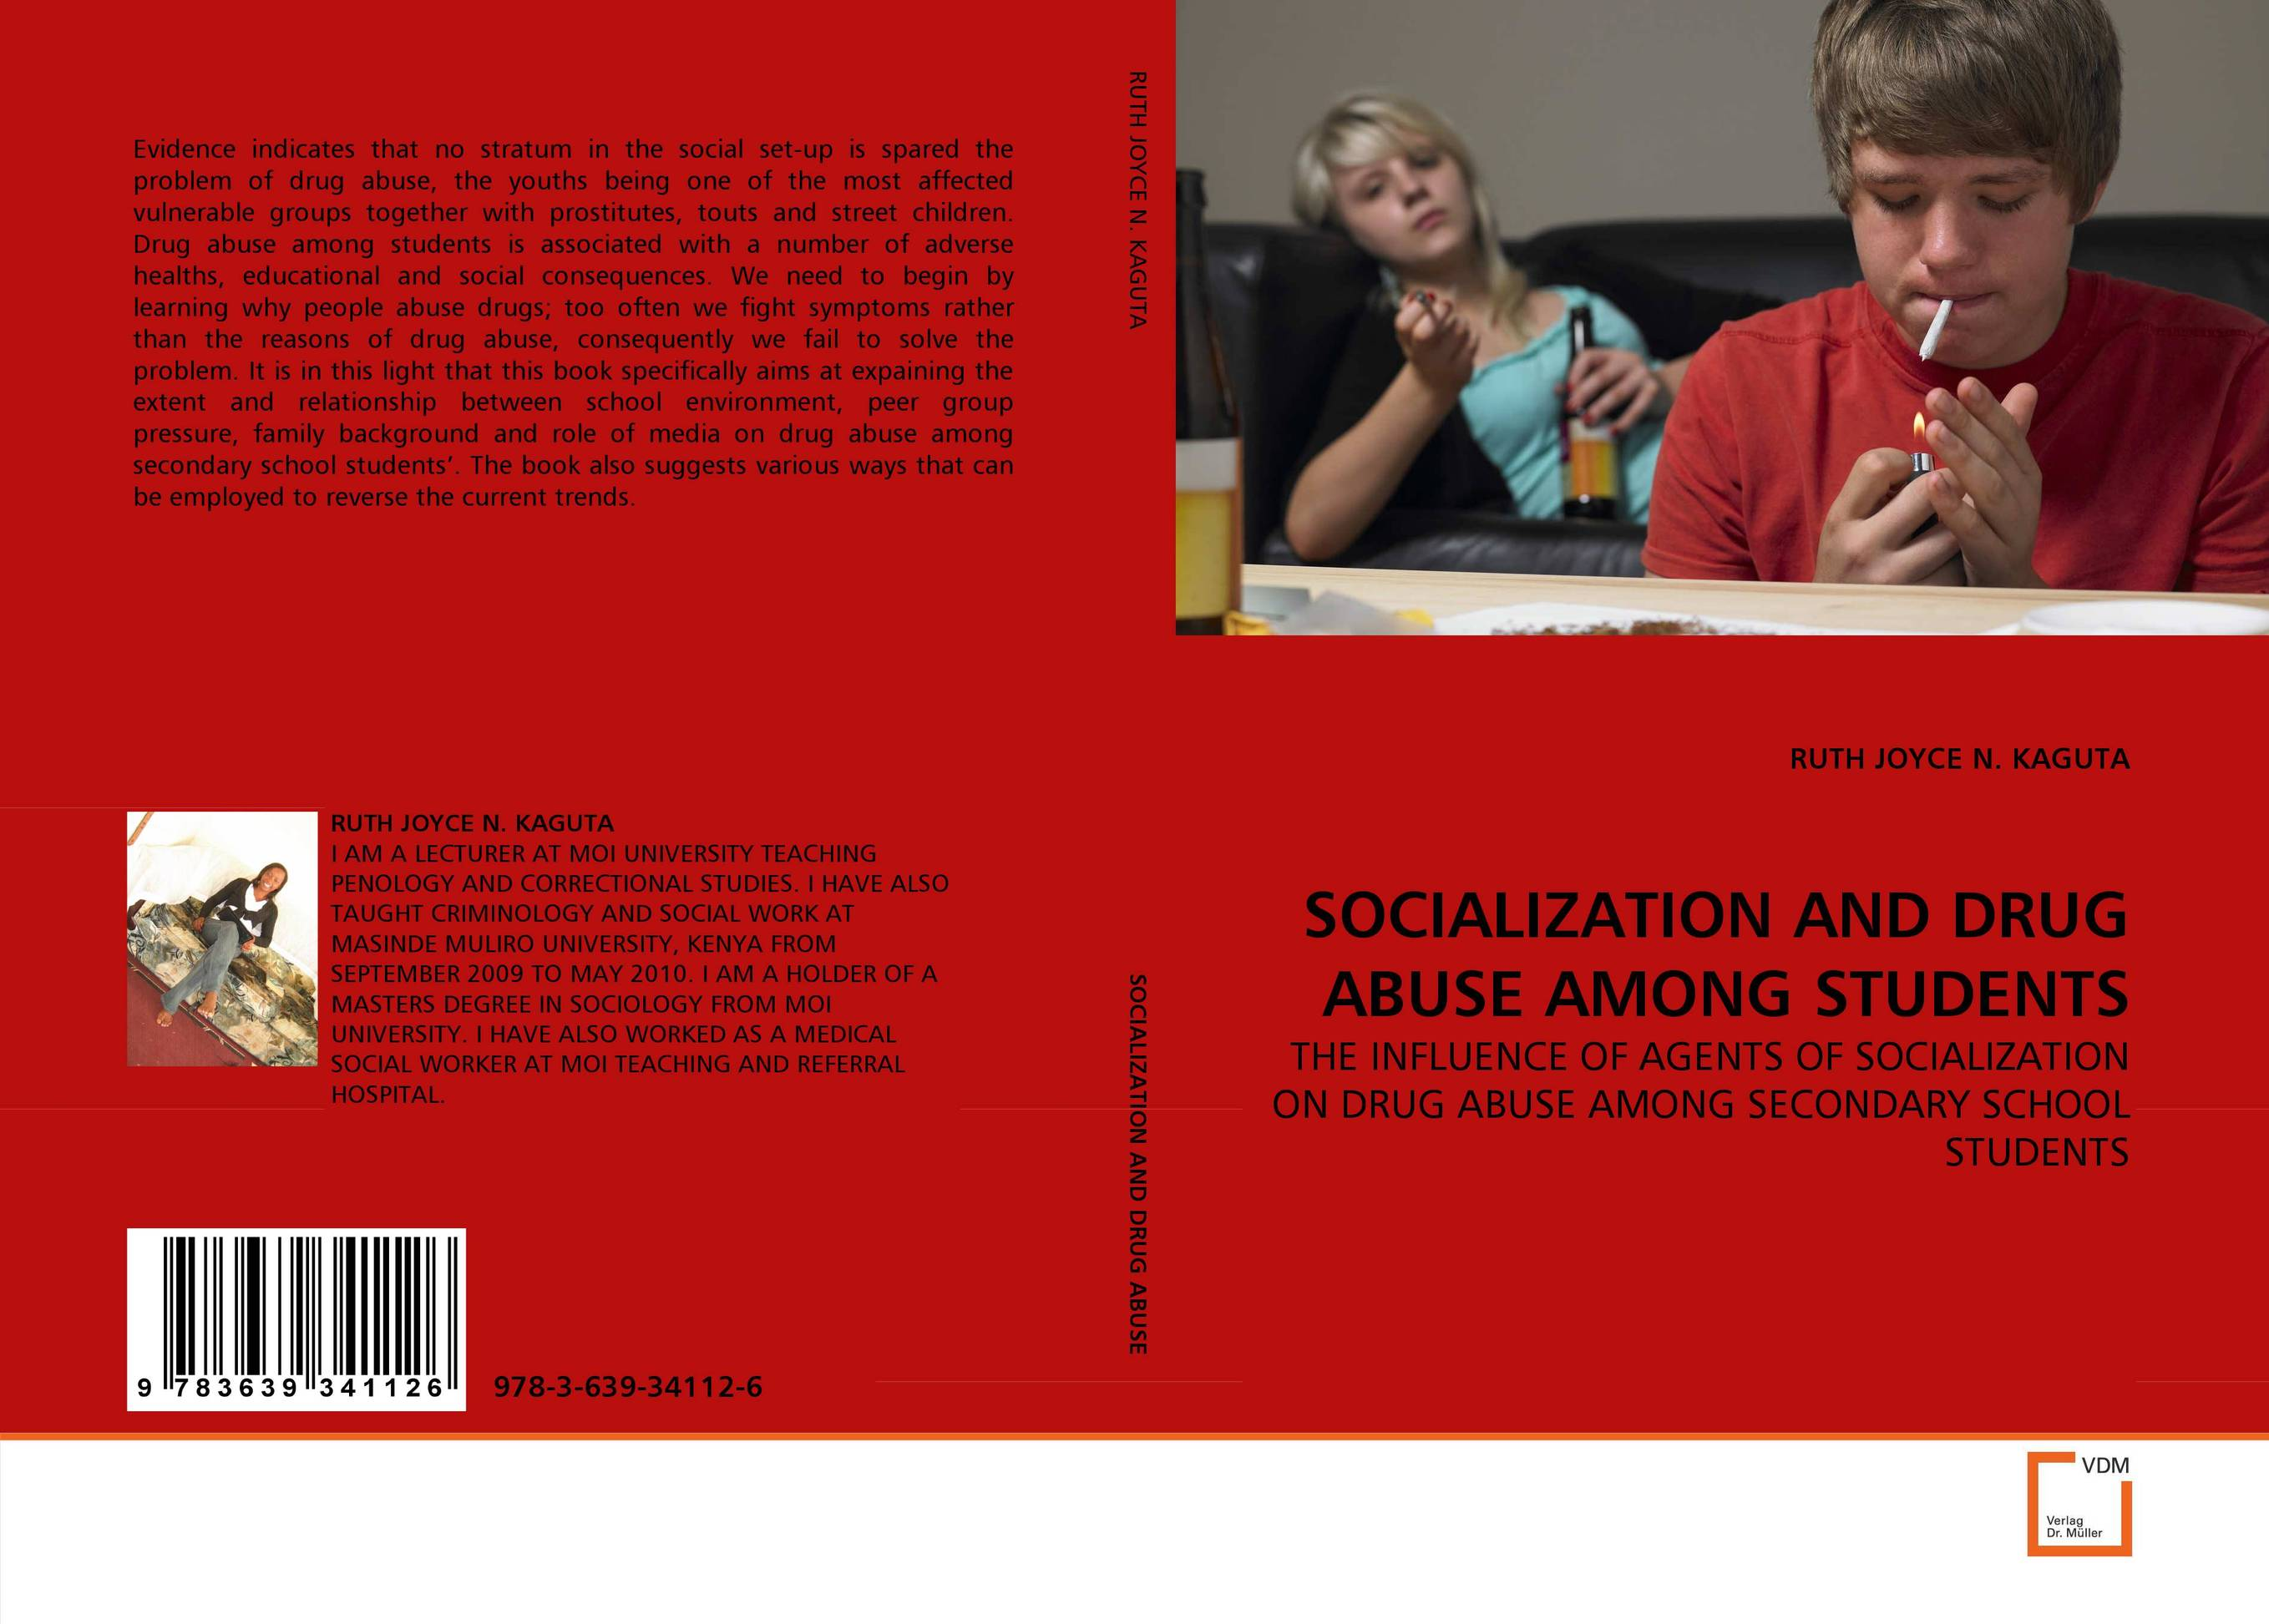 SOCIALIZATION AND DRUG ABUSE AMONG STUDENTS role of school leadership in promoting moral integrity among students